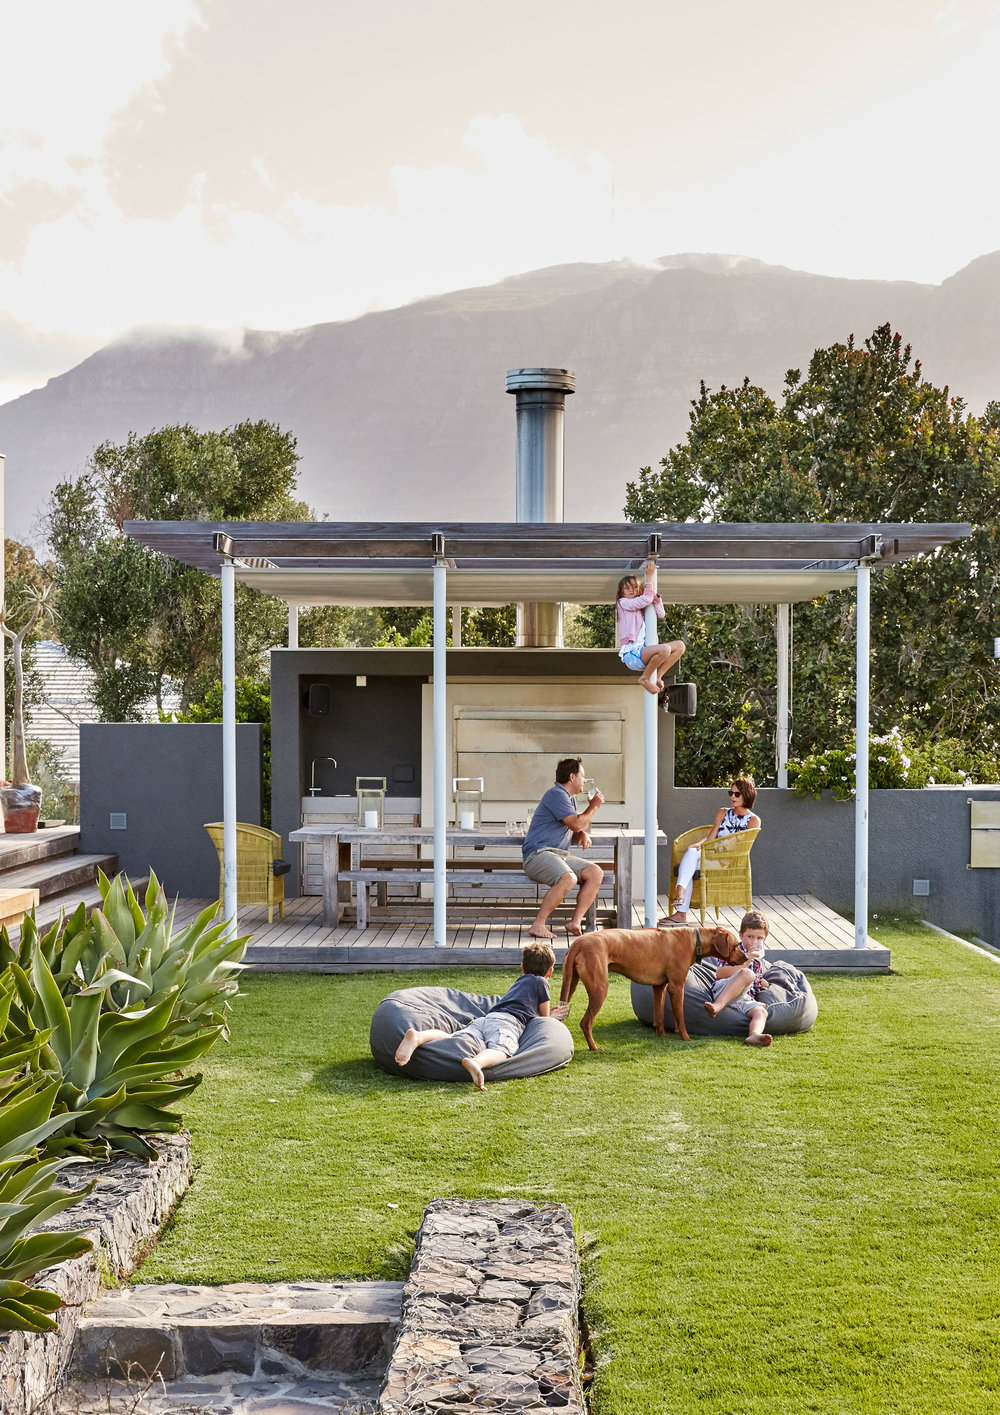 THIS LOW-SLUNG FAMILY HOME BORDERING CAPE TOWN'S GROOT CONSTANTIA WINE ESTATE WAS RAISED ON TONS OF SOIL SO THAT IT COULD TAKE ADVANTAGE OF ITS SPECTACULAR SETTING, THE VIEWS OF THE VINEYARDS AND THE MOUNTAINS BEYOND.